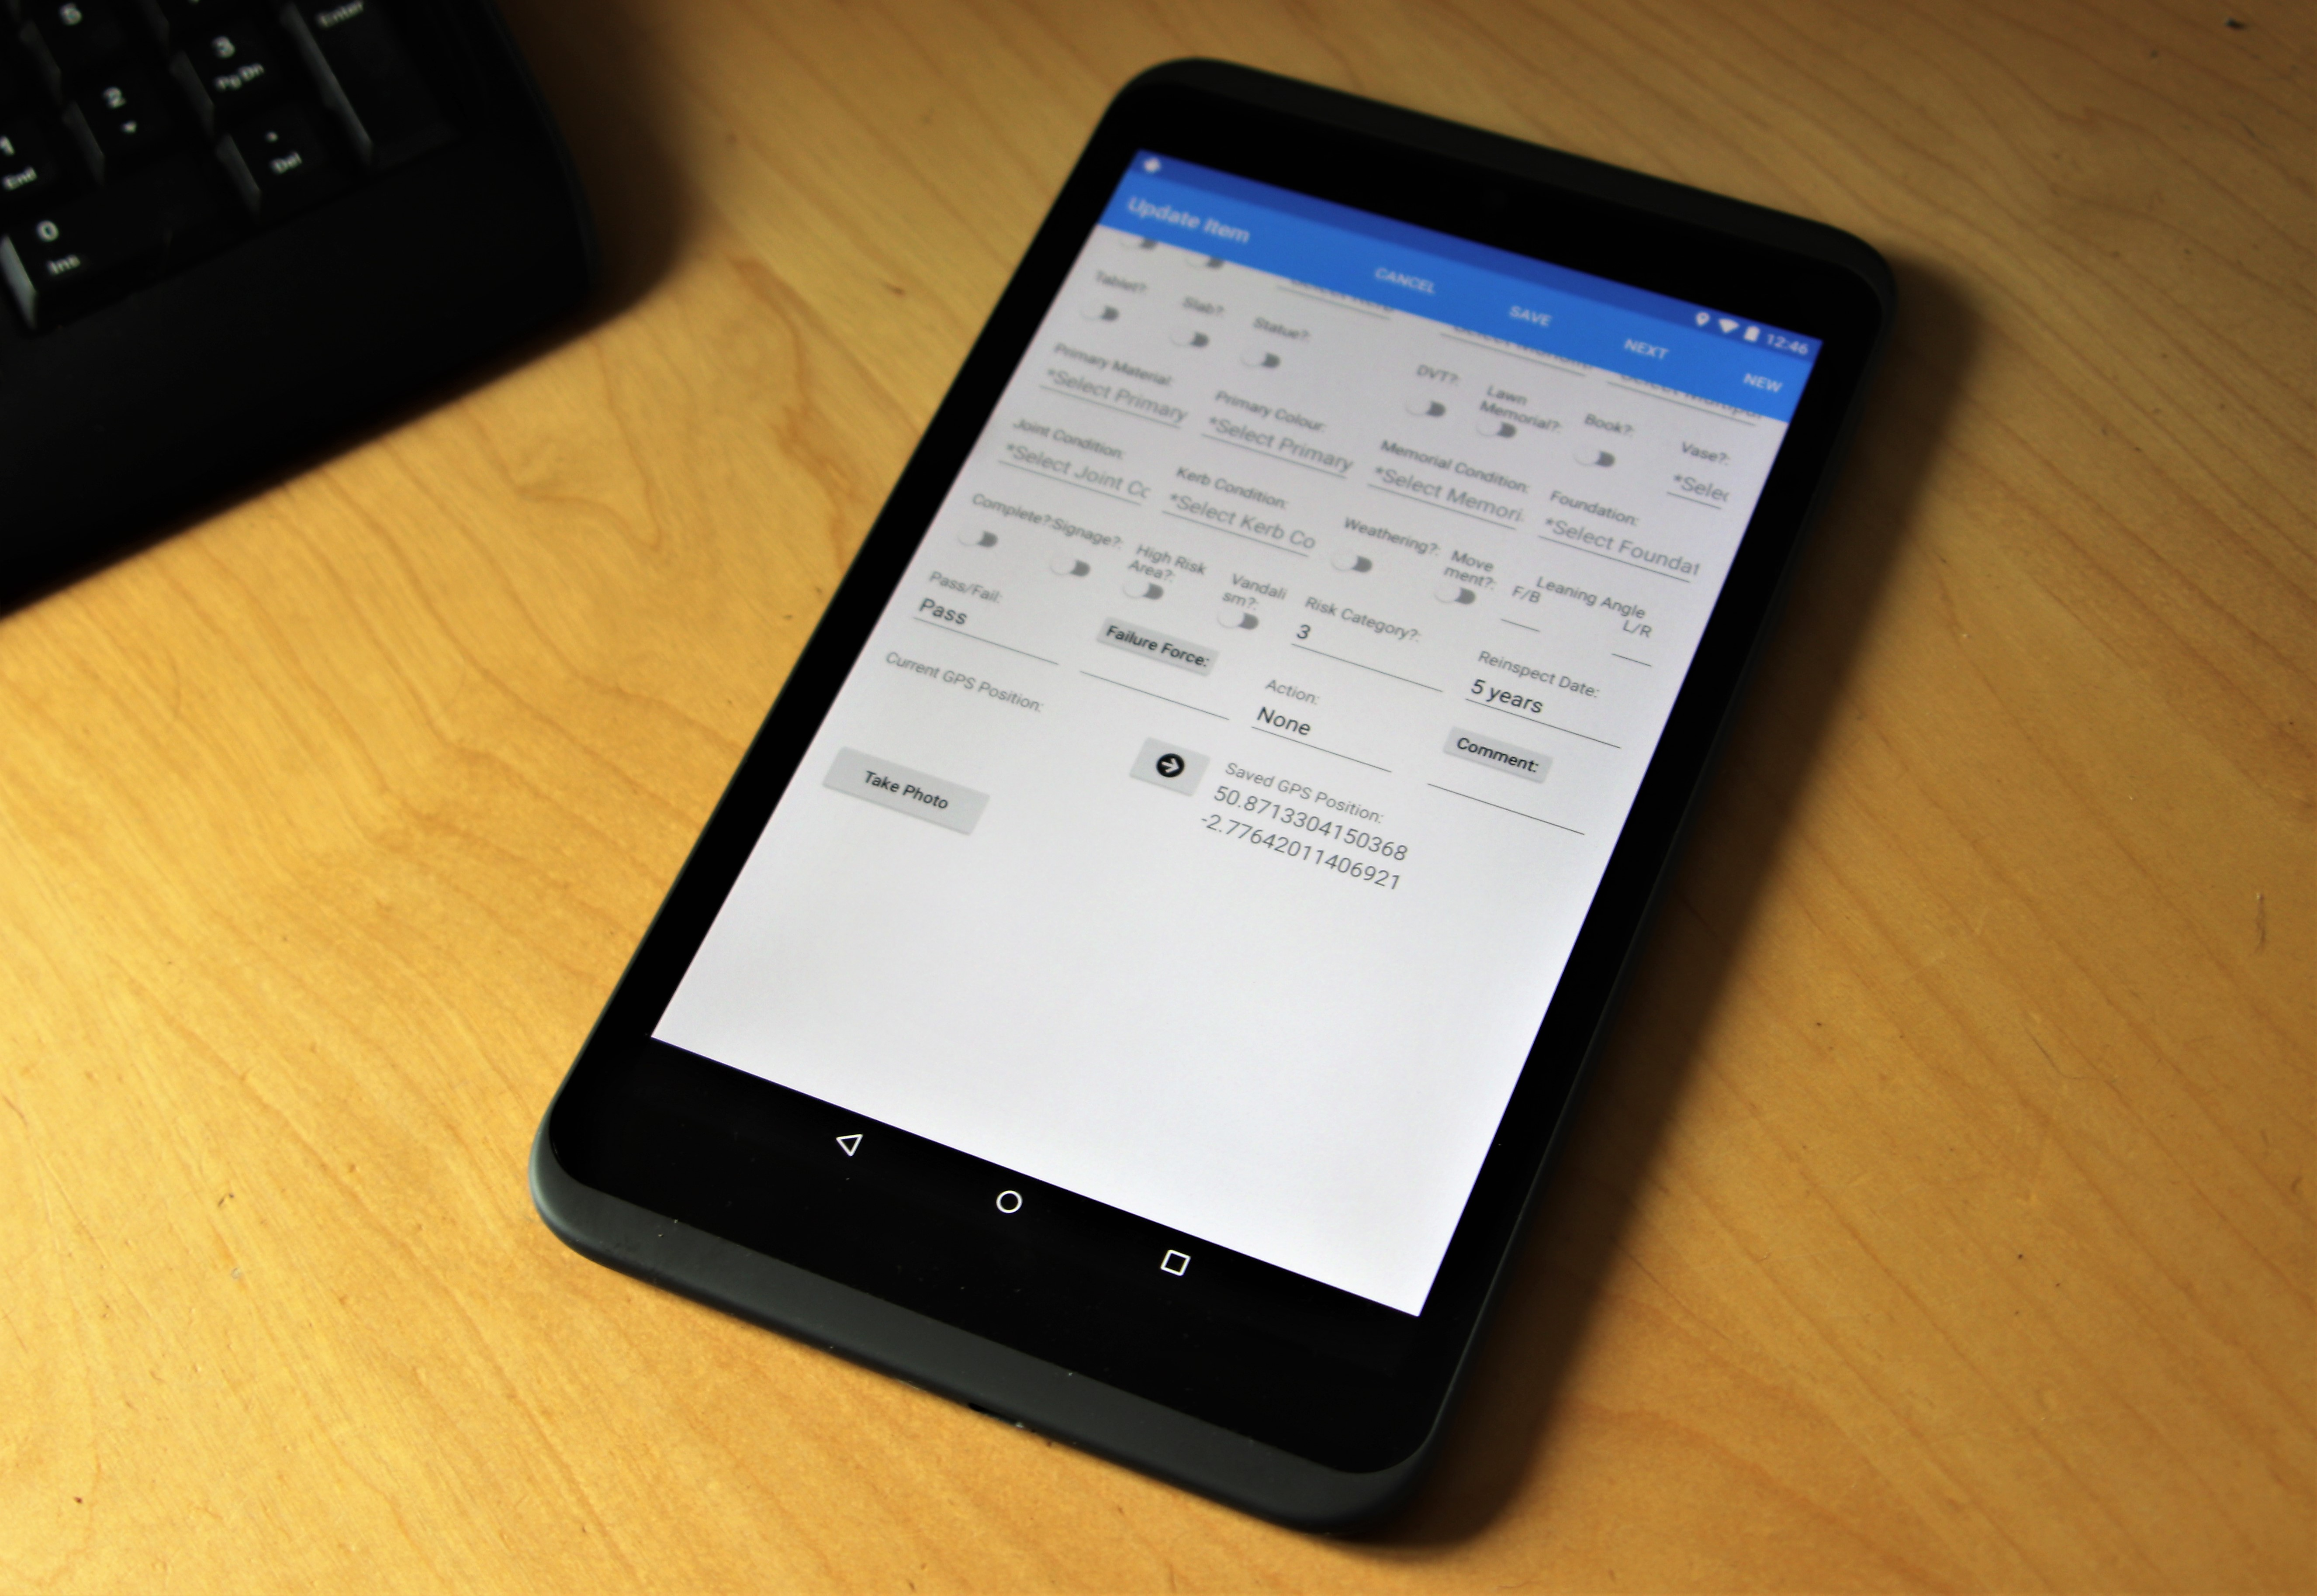 Image of tablet PC displaying AuditAssist software